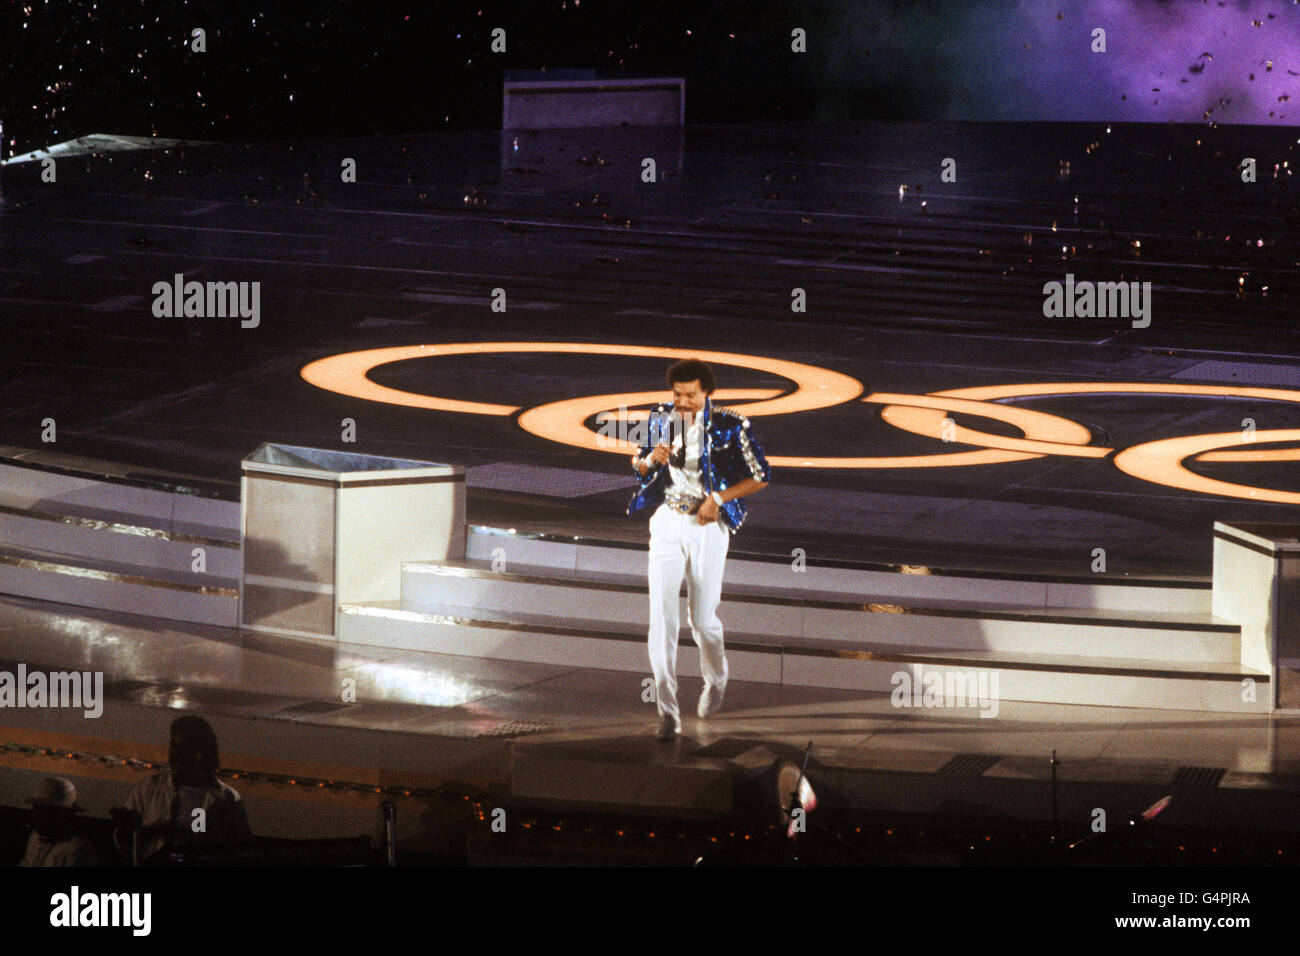 Olympic Games - Los Angeles 1984 - Closing Ceremony - Stock Image